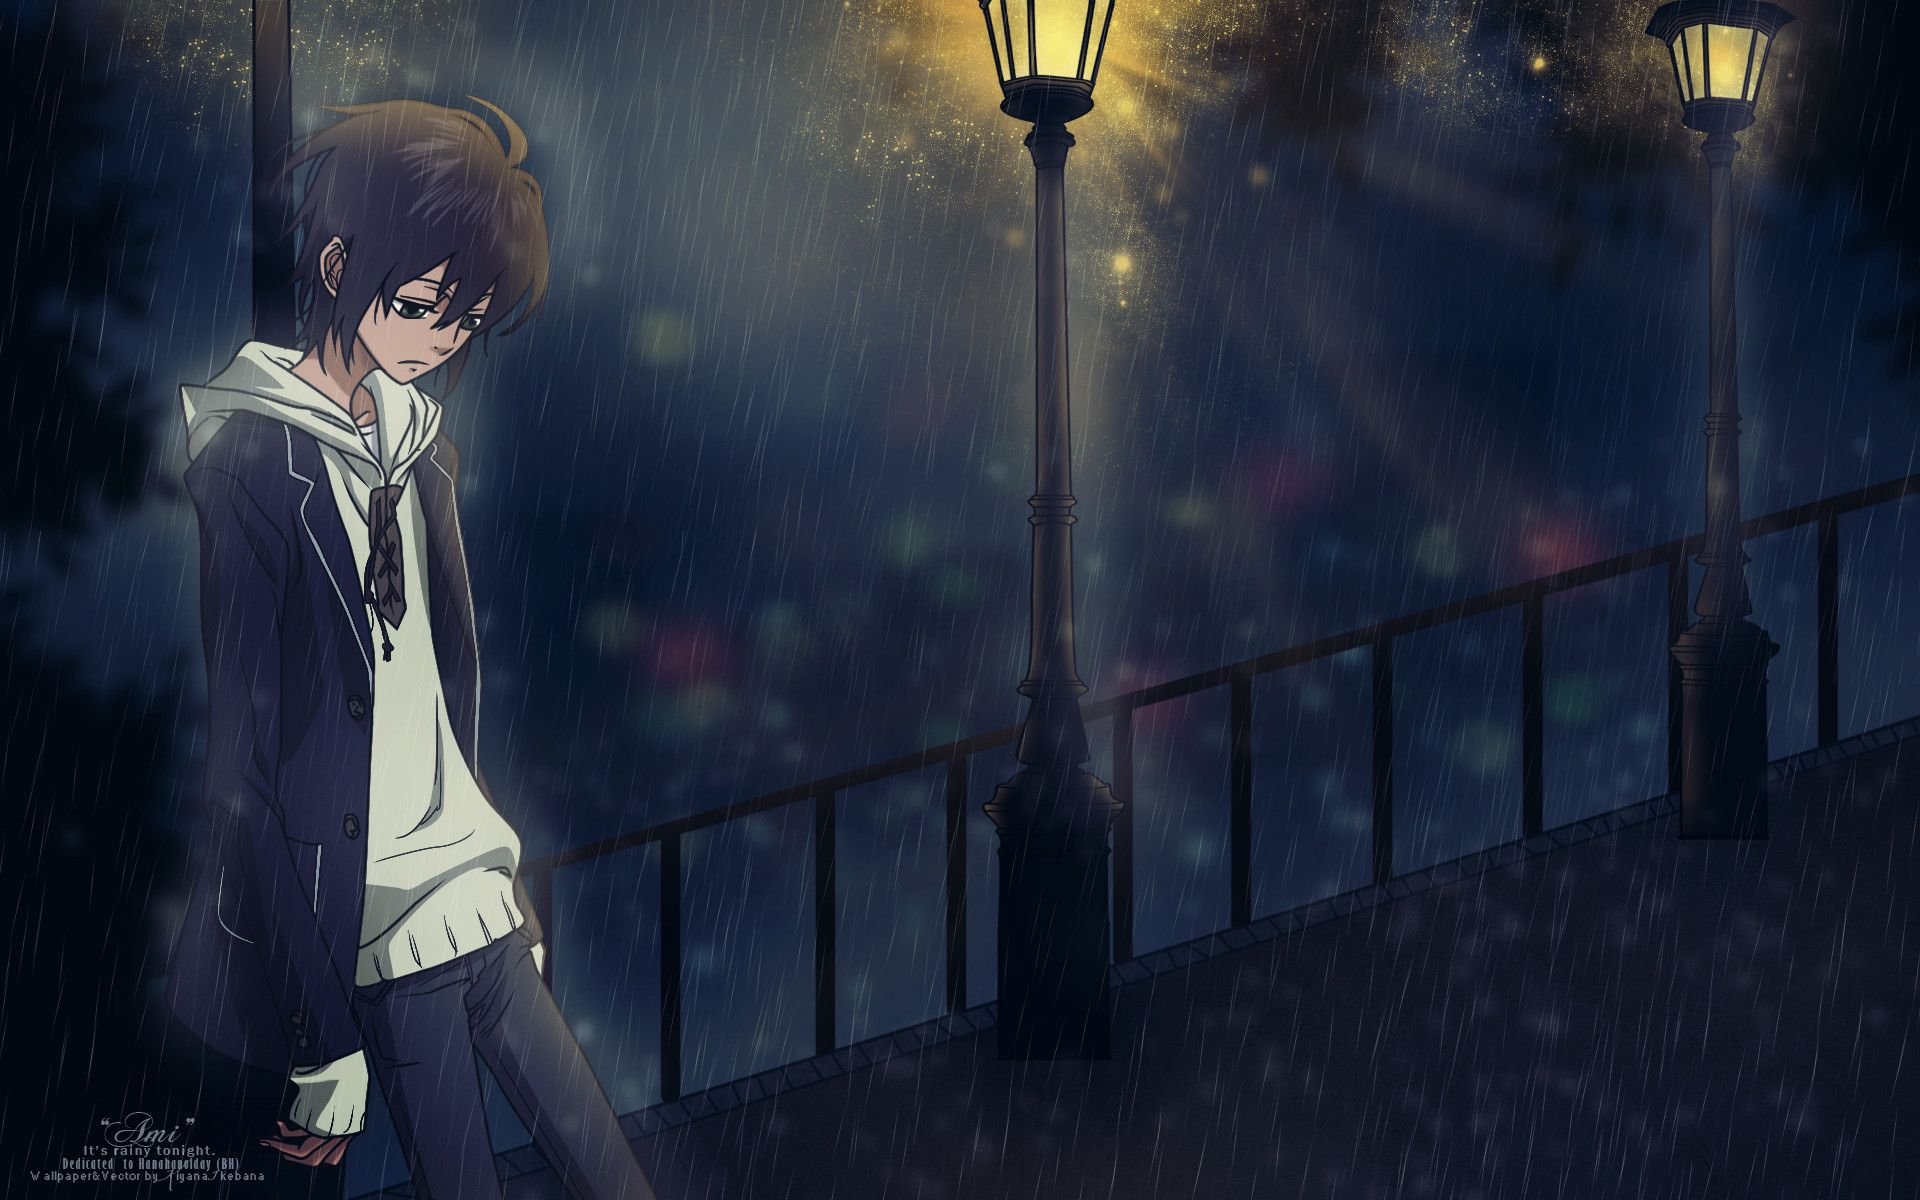 Rain Sad Anime Wallpapers Top Free Rain Sad Anime Backgrounds